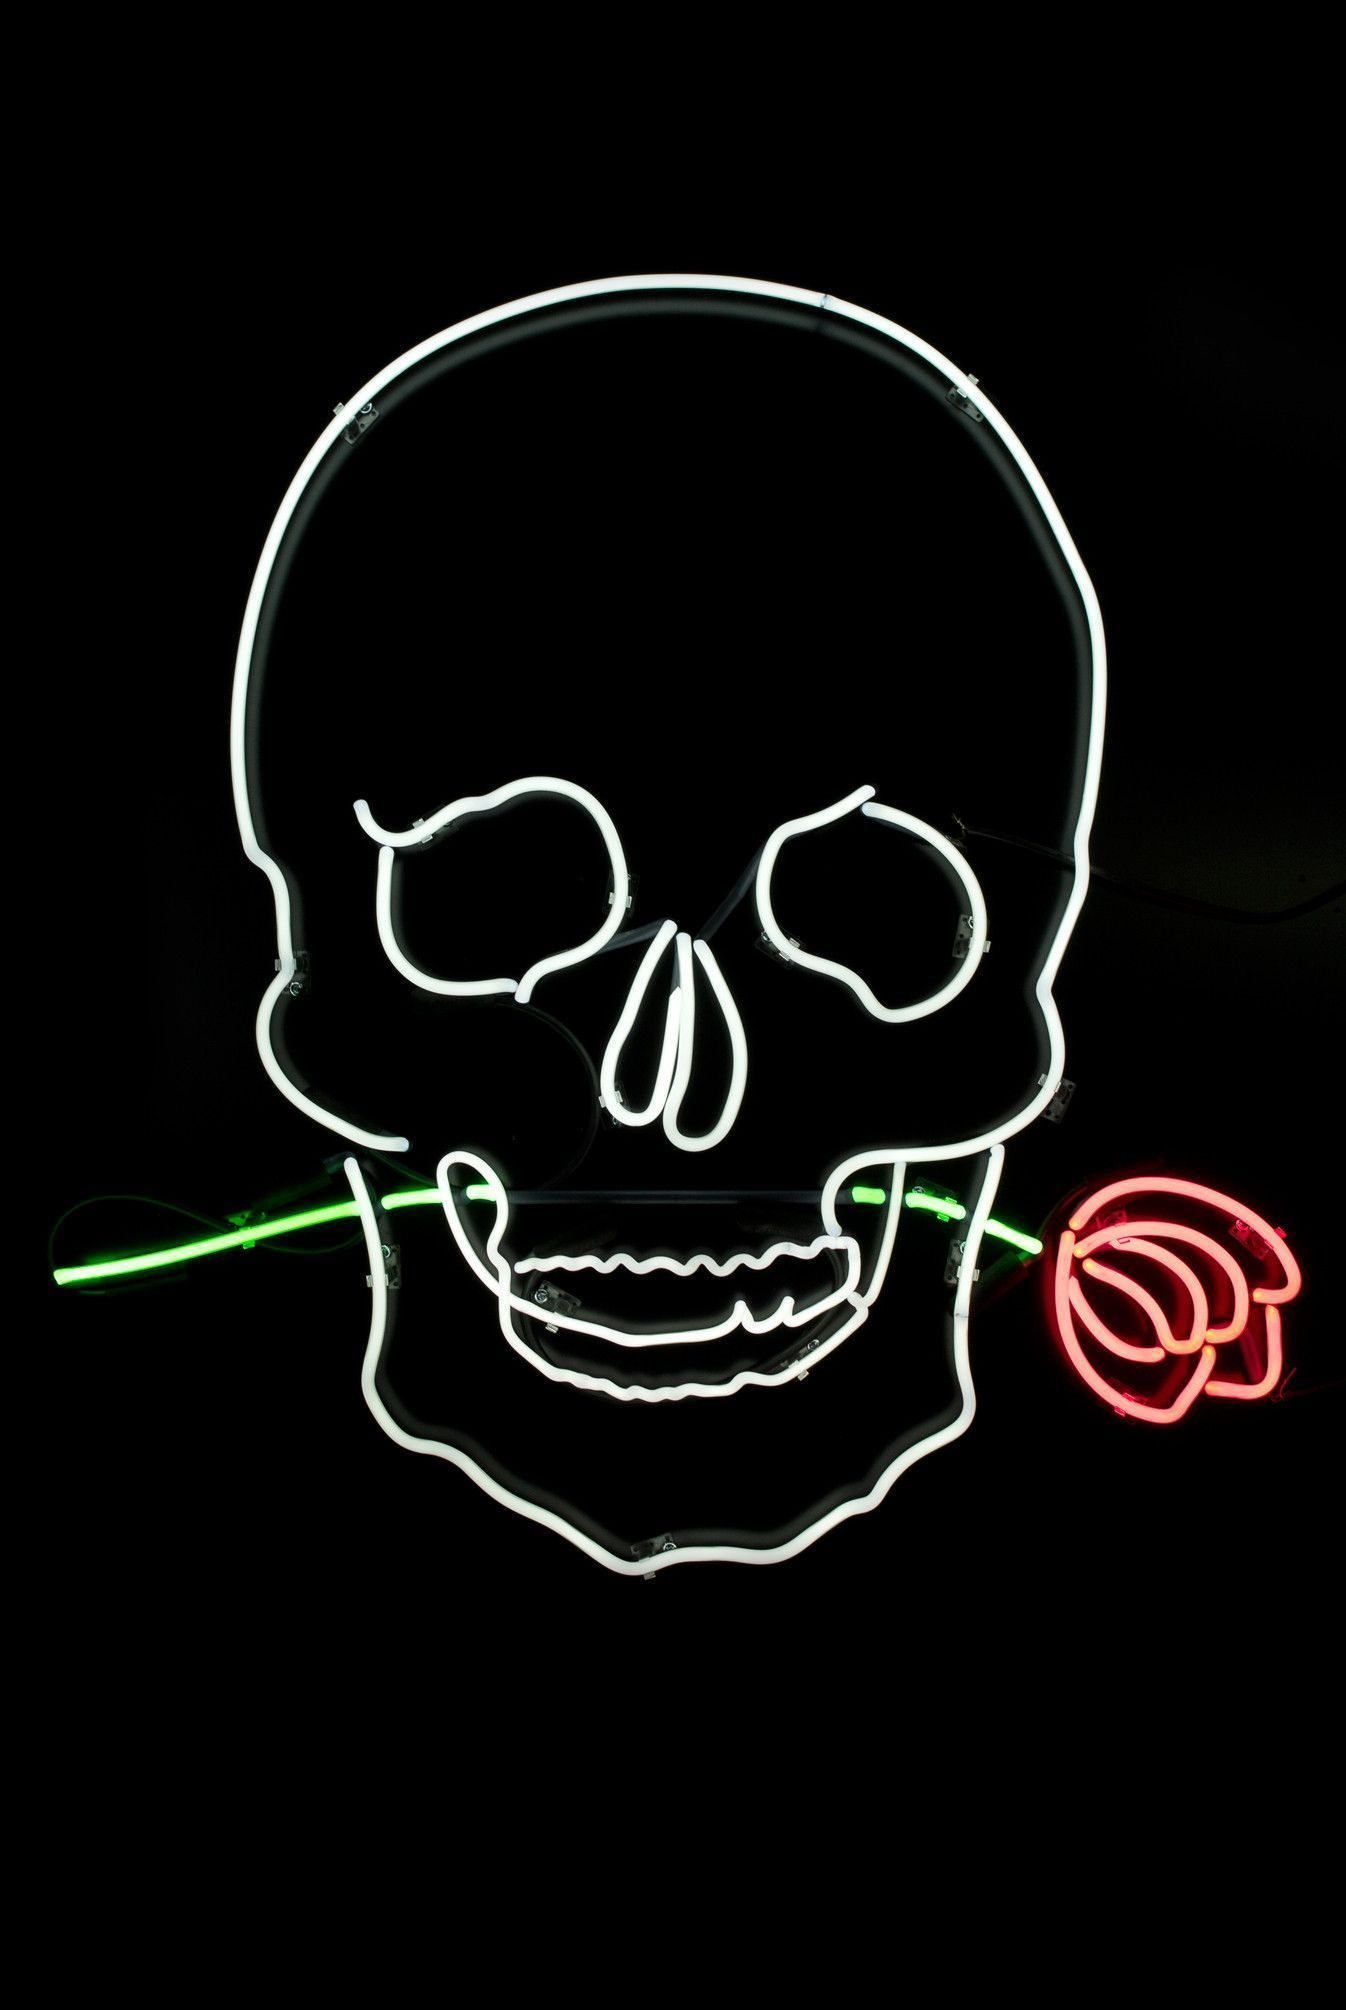 1346x2010 Iphone Wallpaper Neon Sign Unique Skull With Rose Neon ...